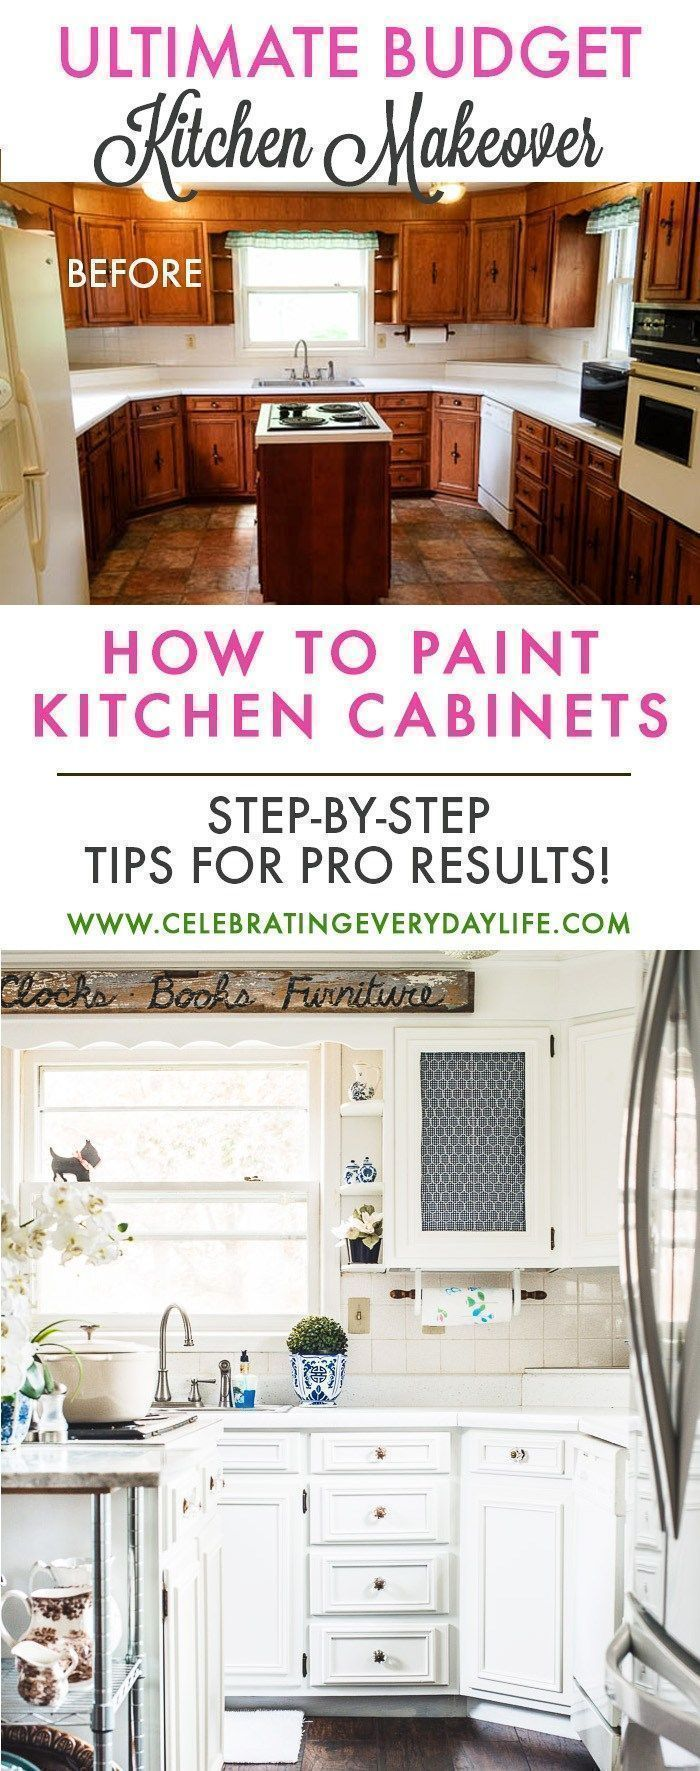 How to turn your kitchen into a